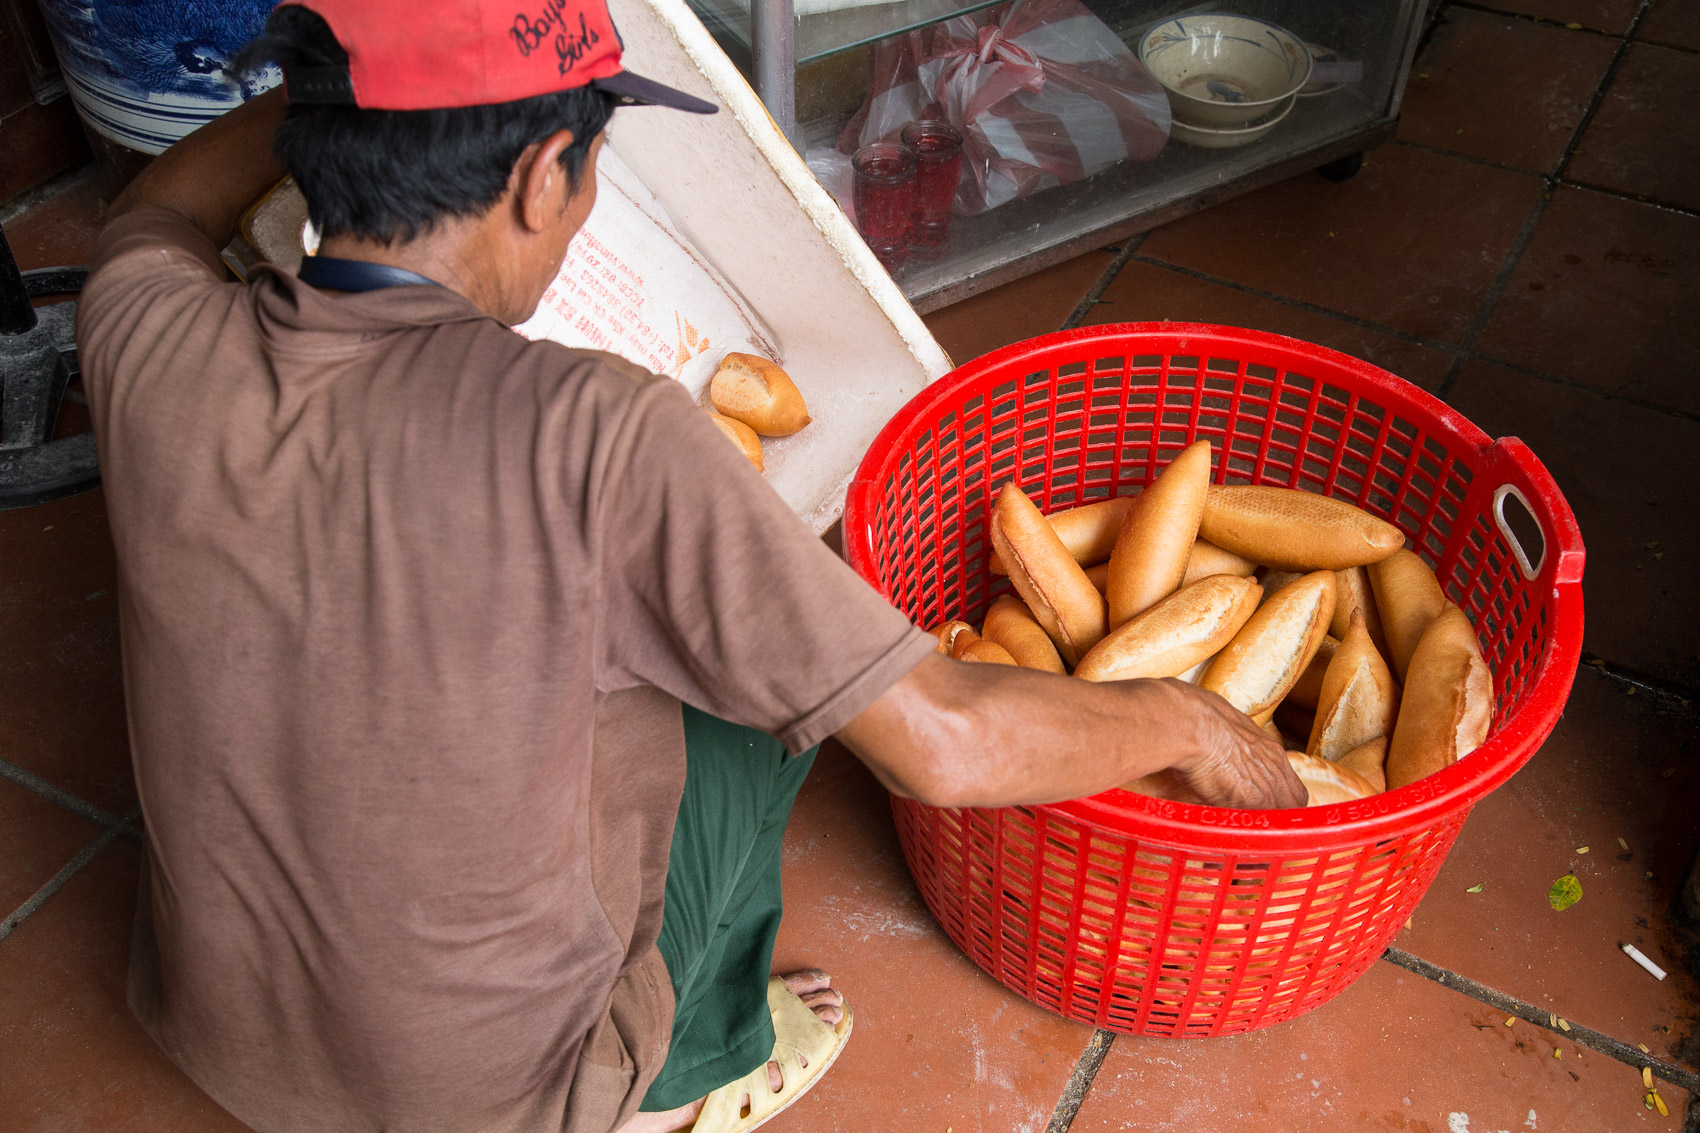 A bakery is almost directly next door to Madam Puong.